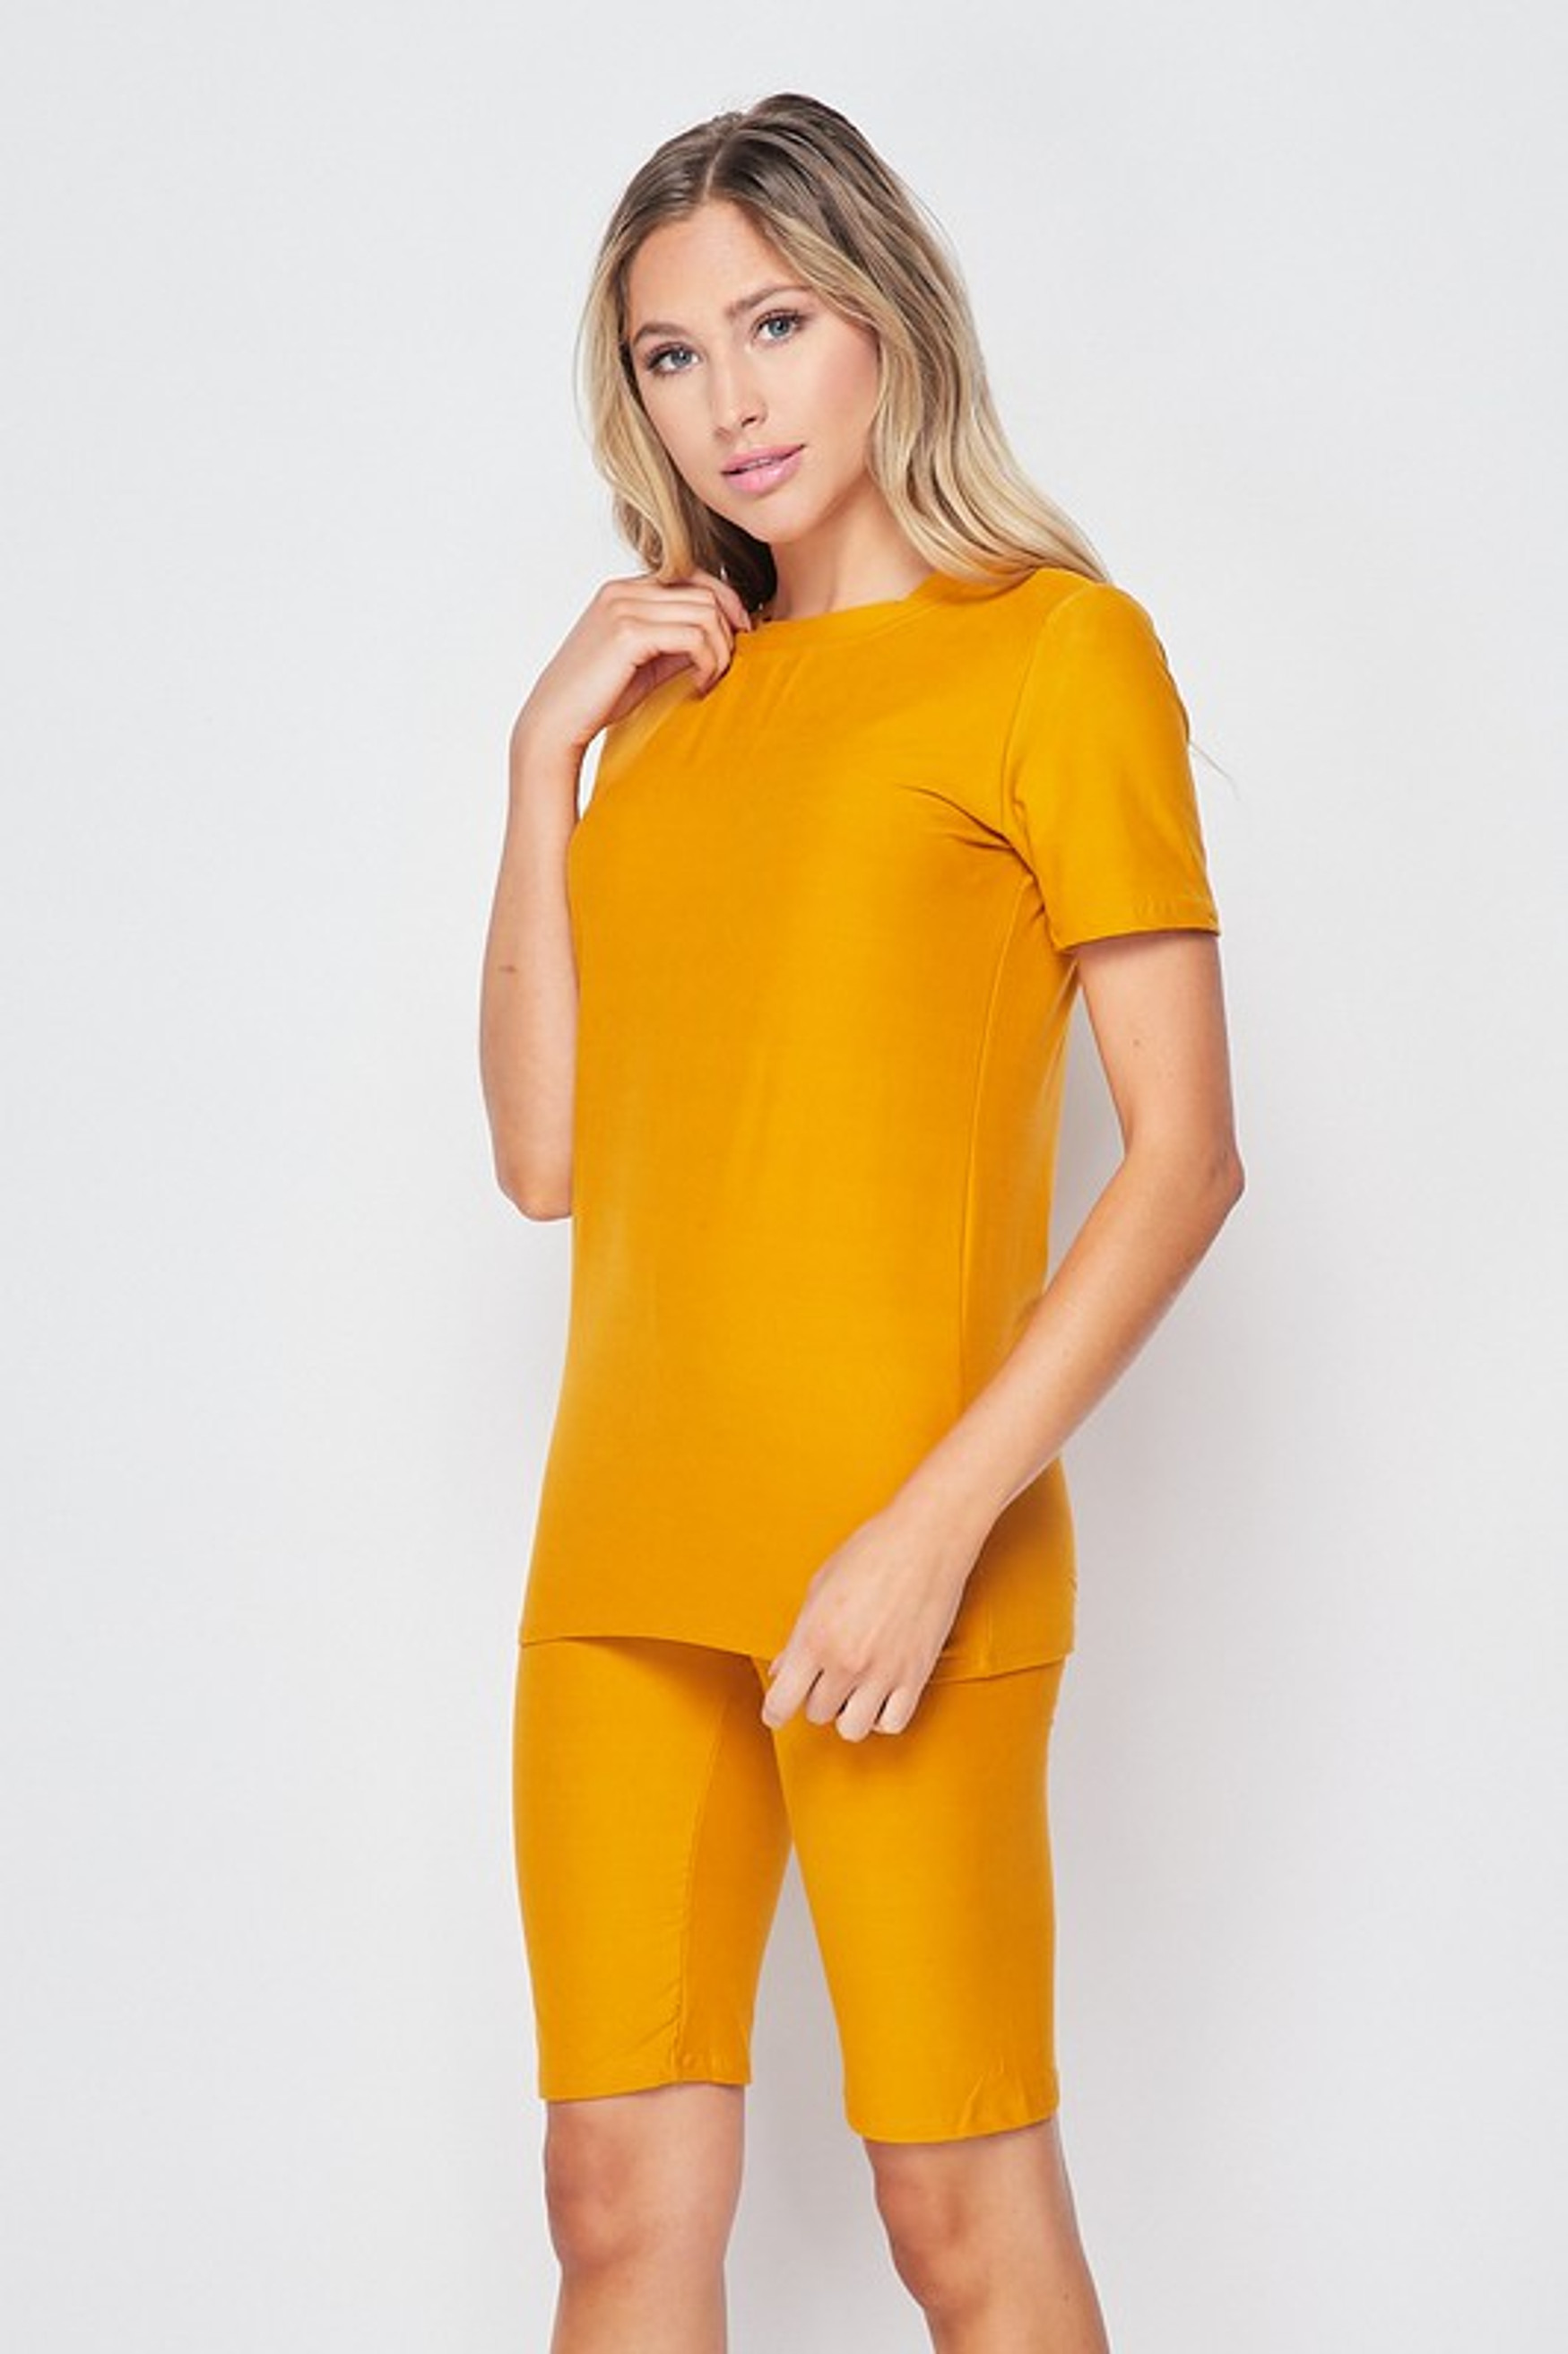 45 degree view of Mustard Buttery Soft Basic Solid Biker Shorts and T-Shirt Set